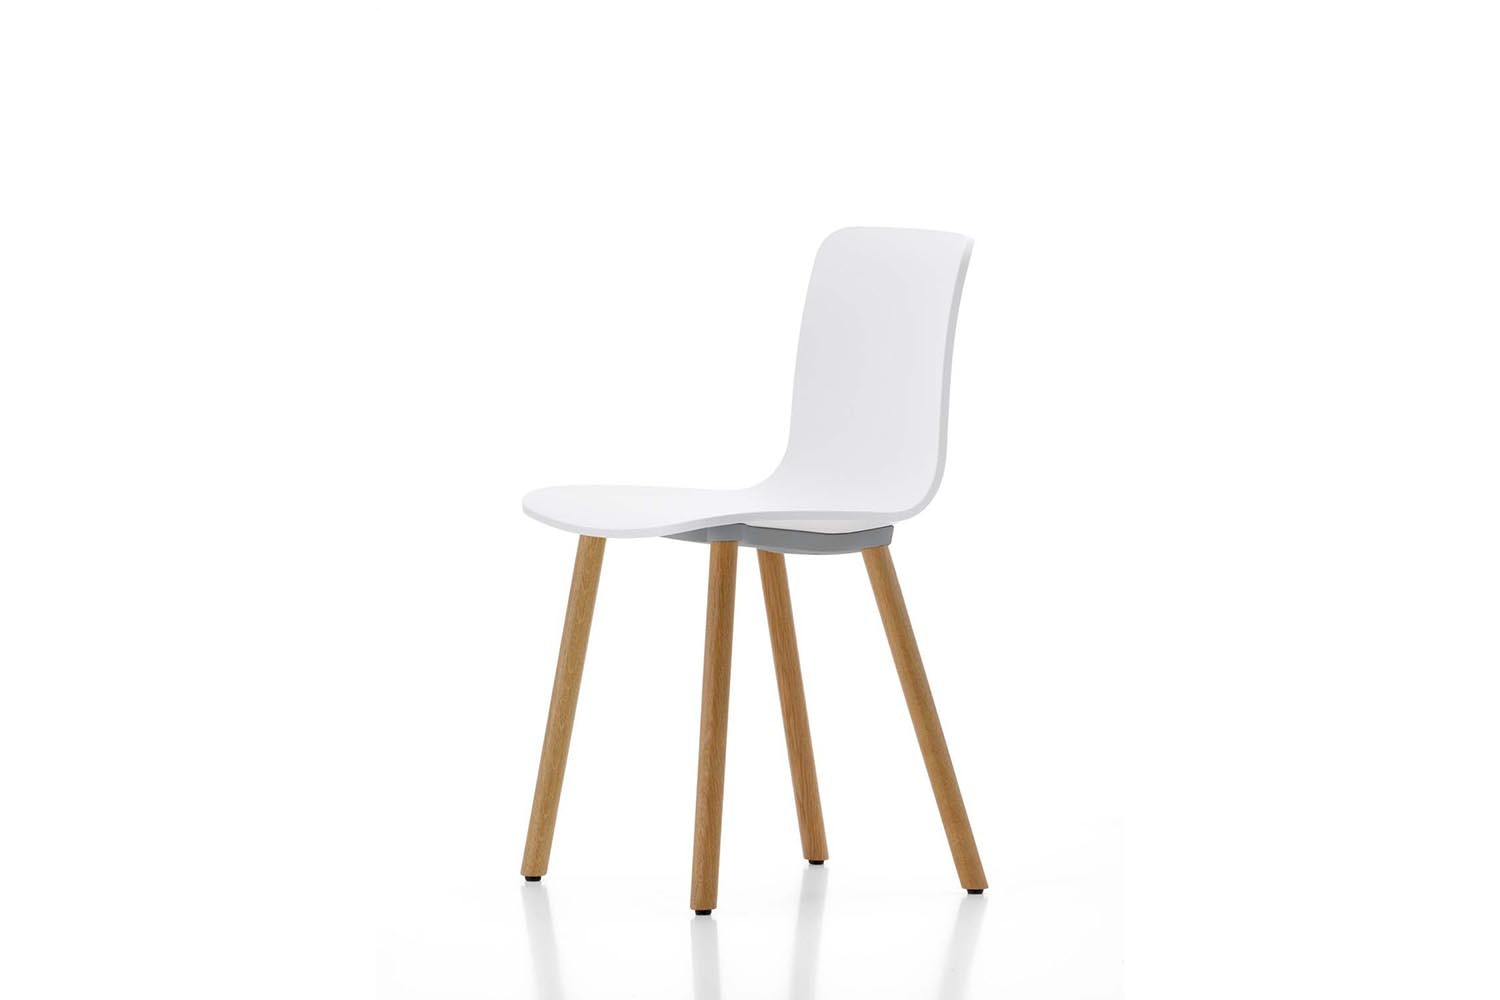 HAL Wood Chair in White by Jasper Morrison for Vitra